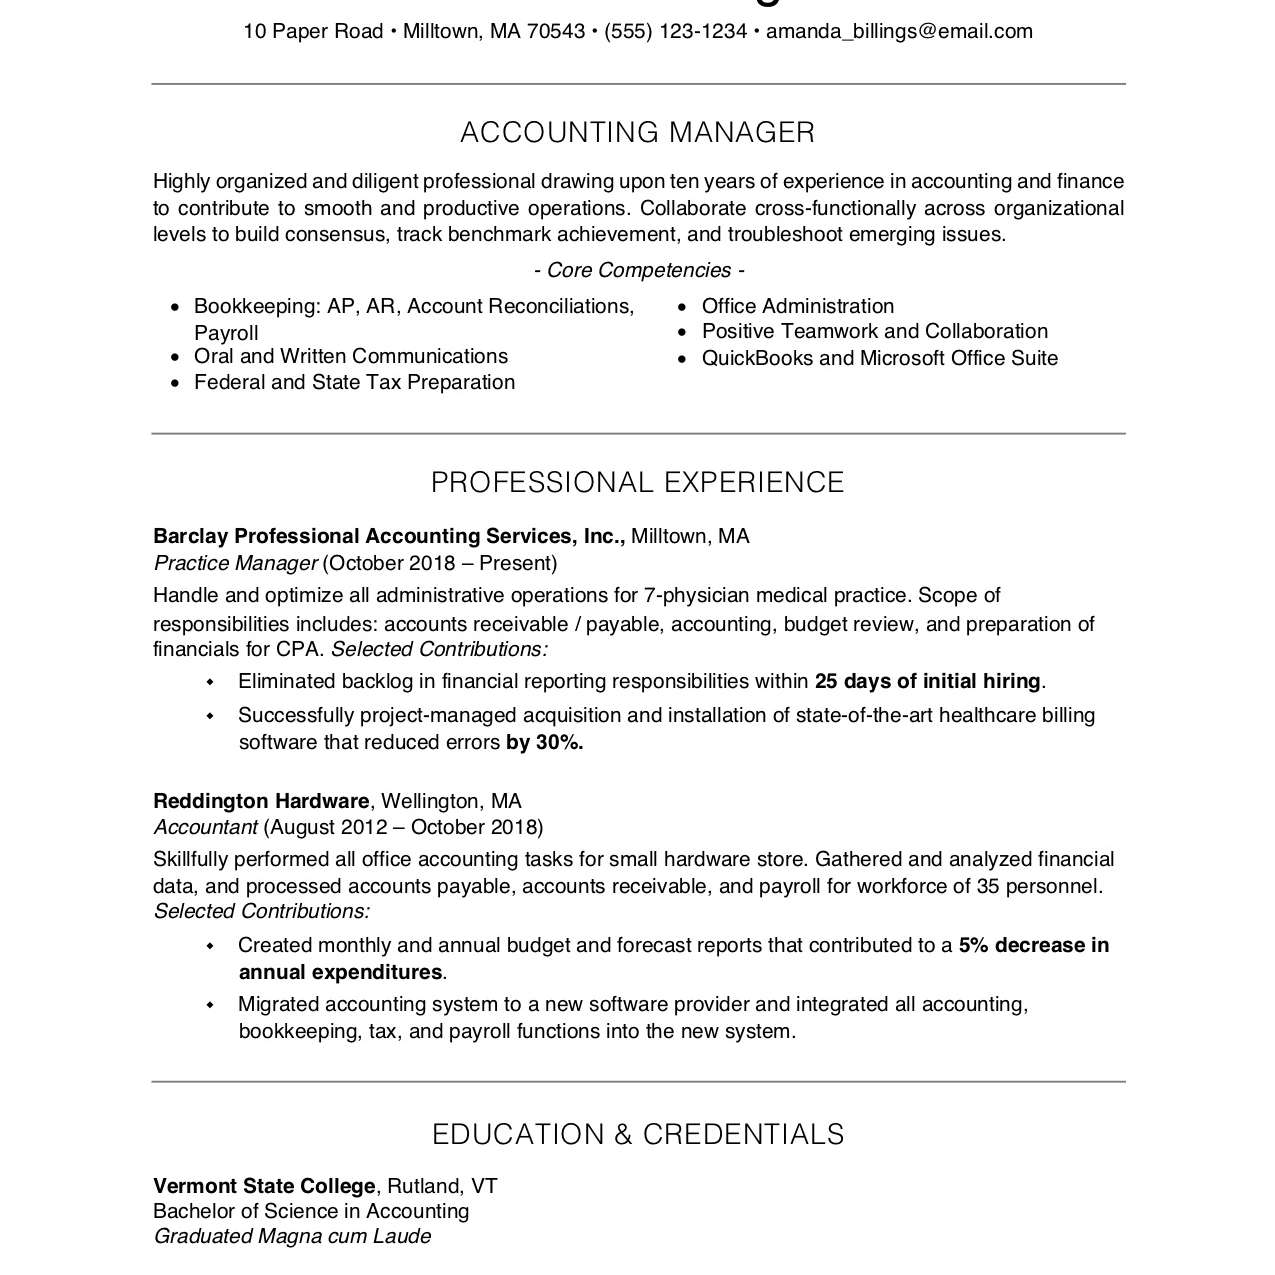 free professional resume examples and writing tips healthcare template 2063596res1 Resume Healthcare Professional Resume Template